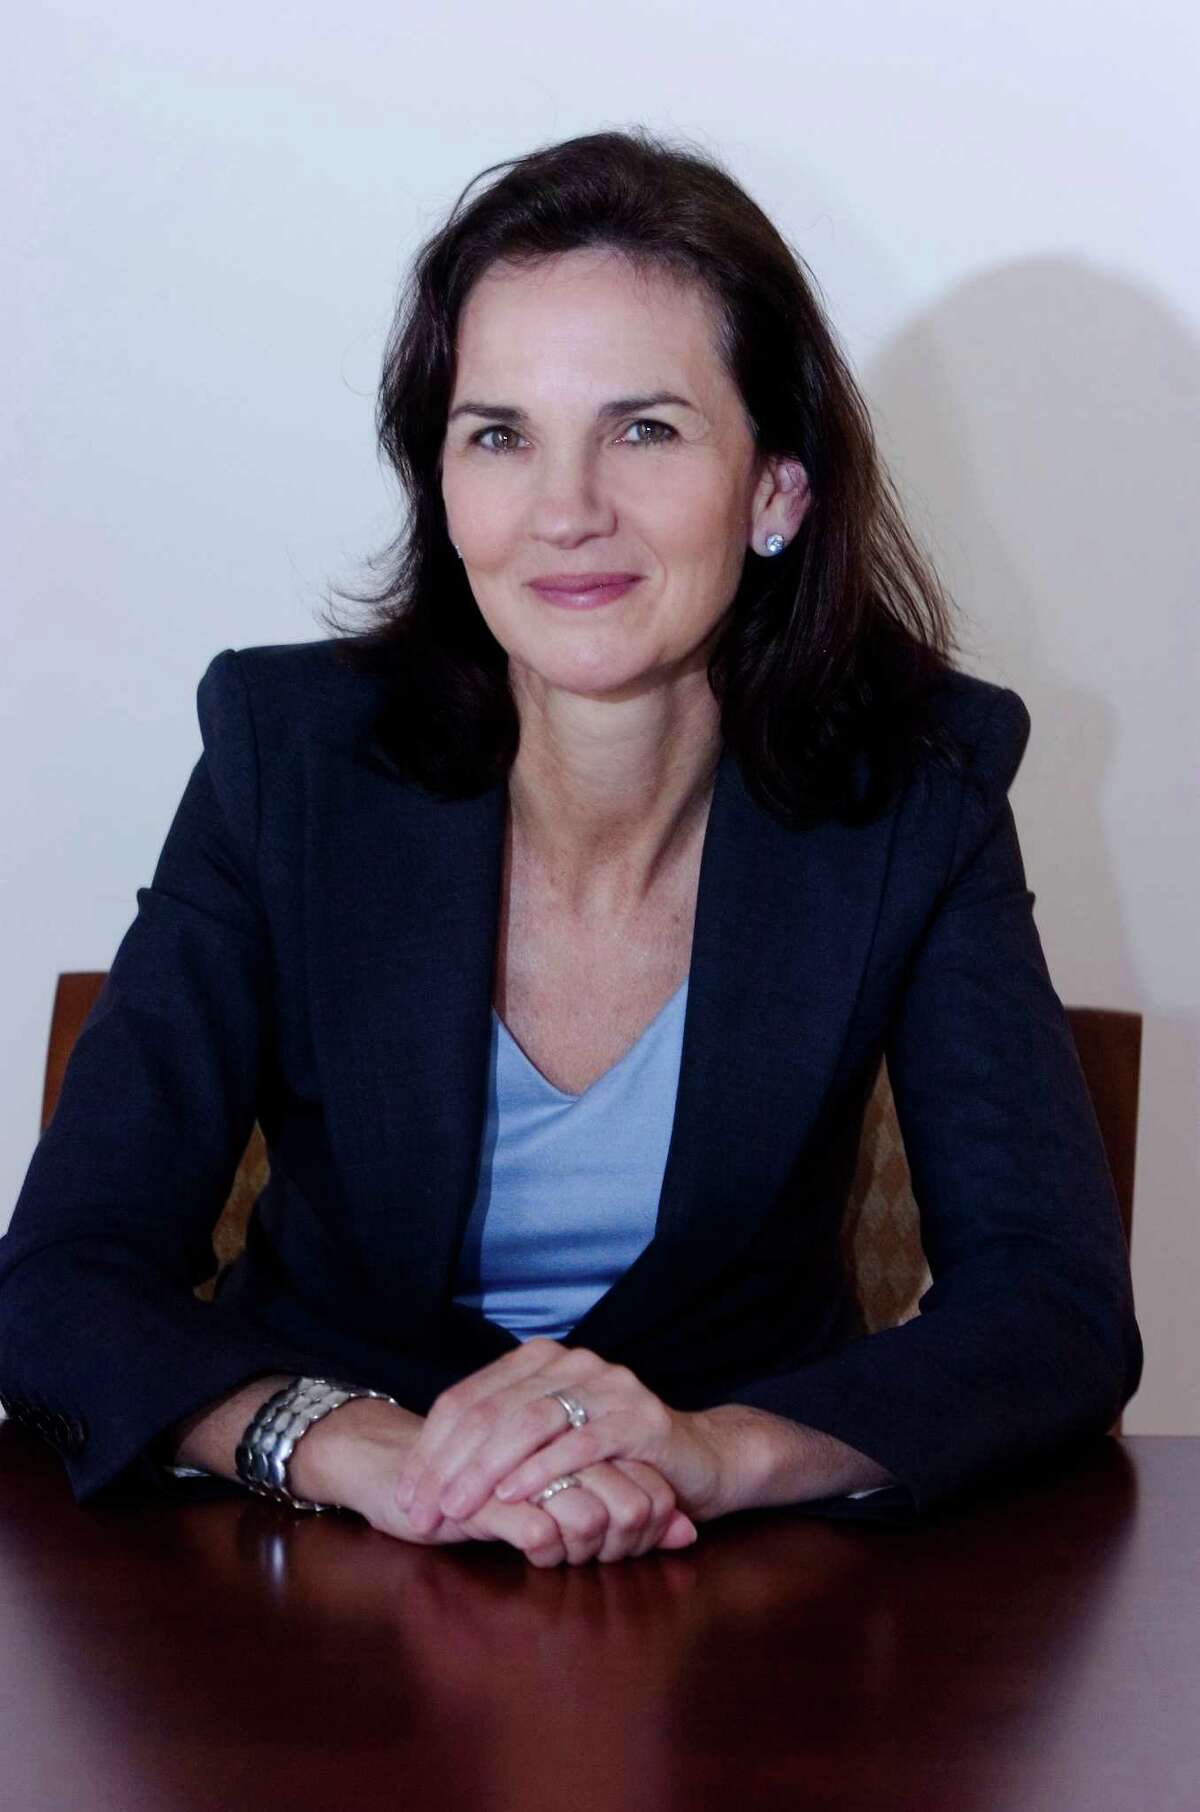 Deirdre Daly, acting United States Attorney